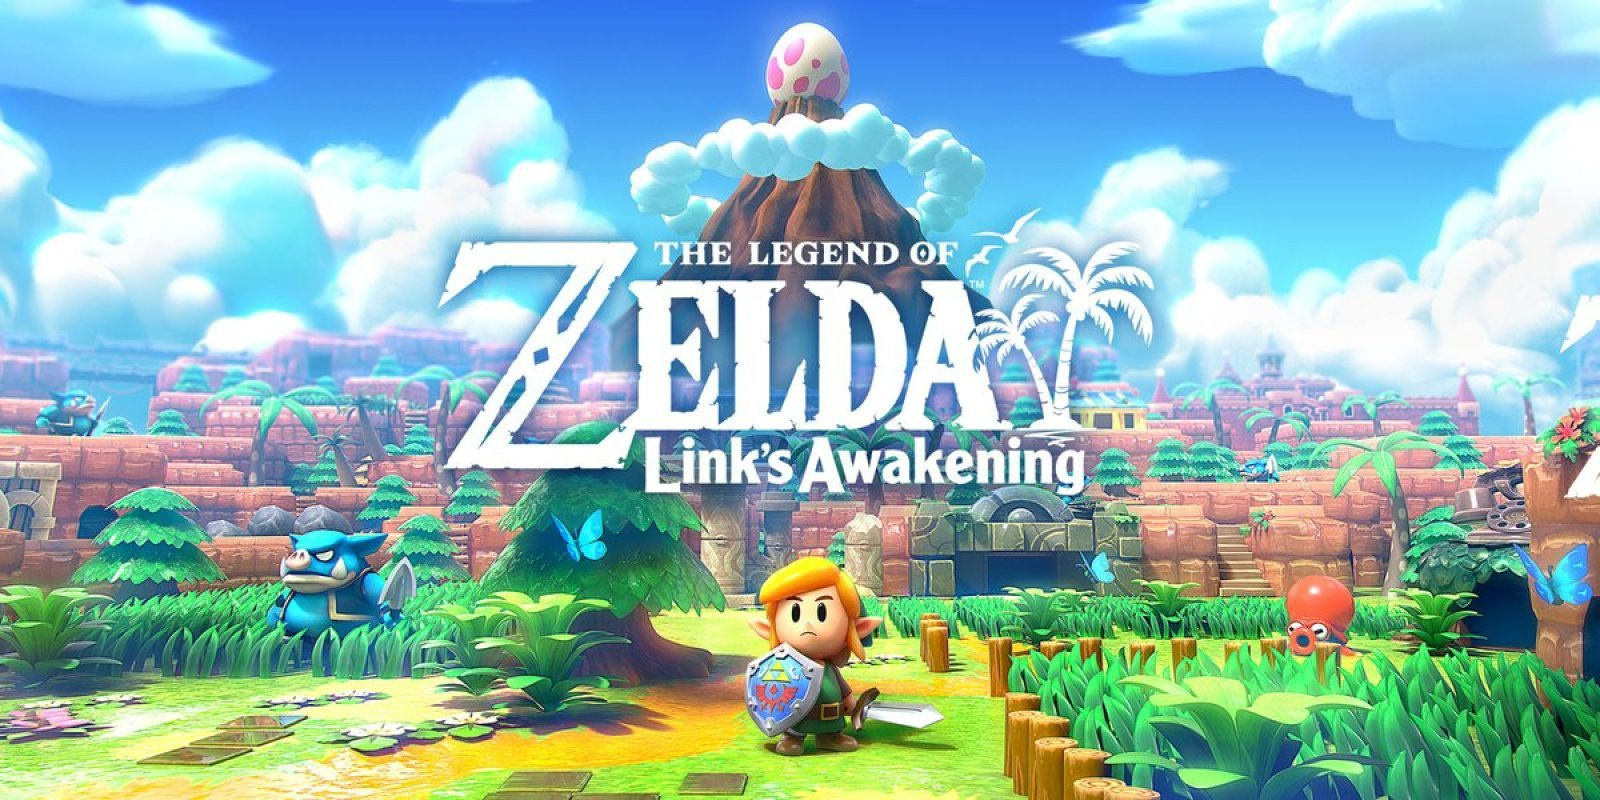 The Legend of Zelda: Link's Awakening Masthead